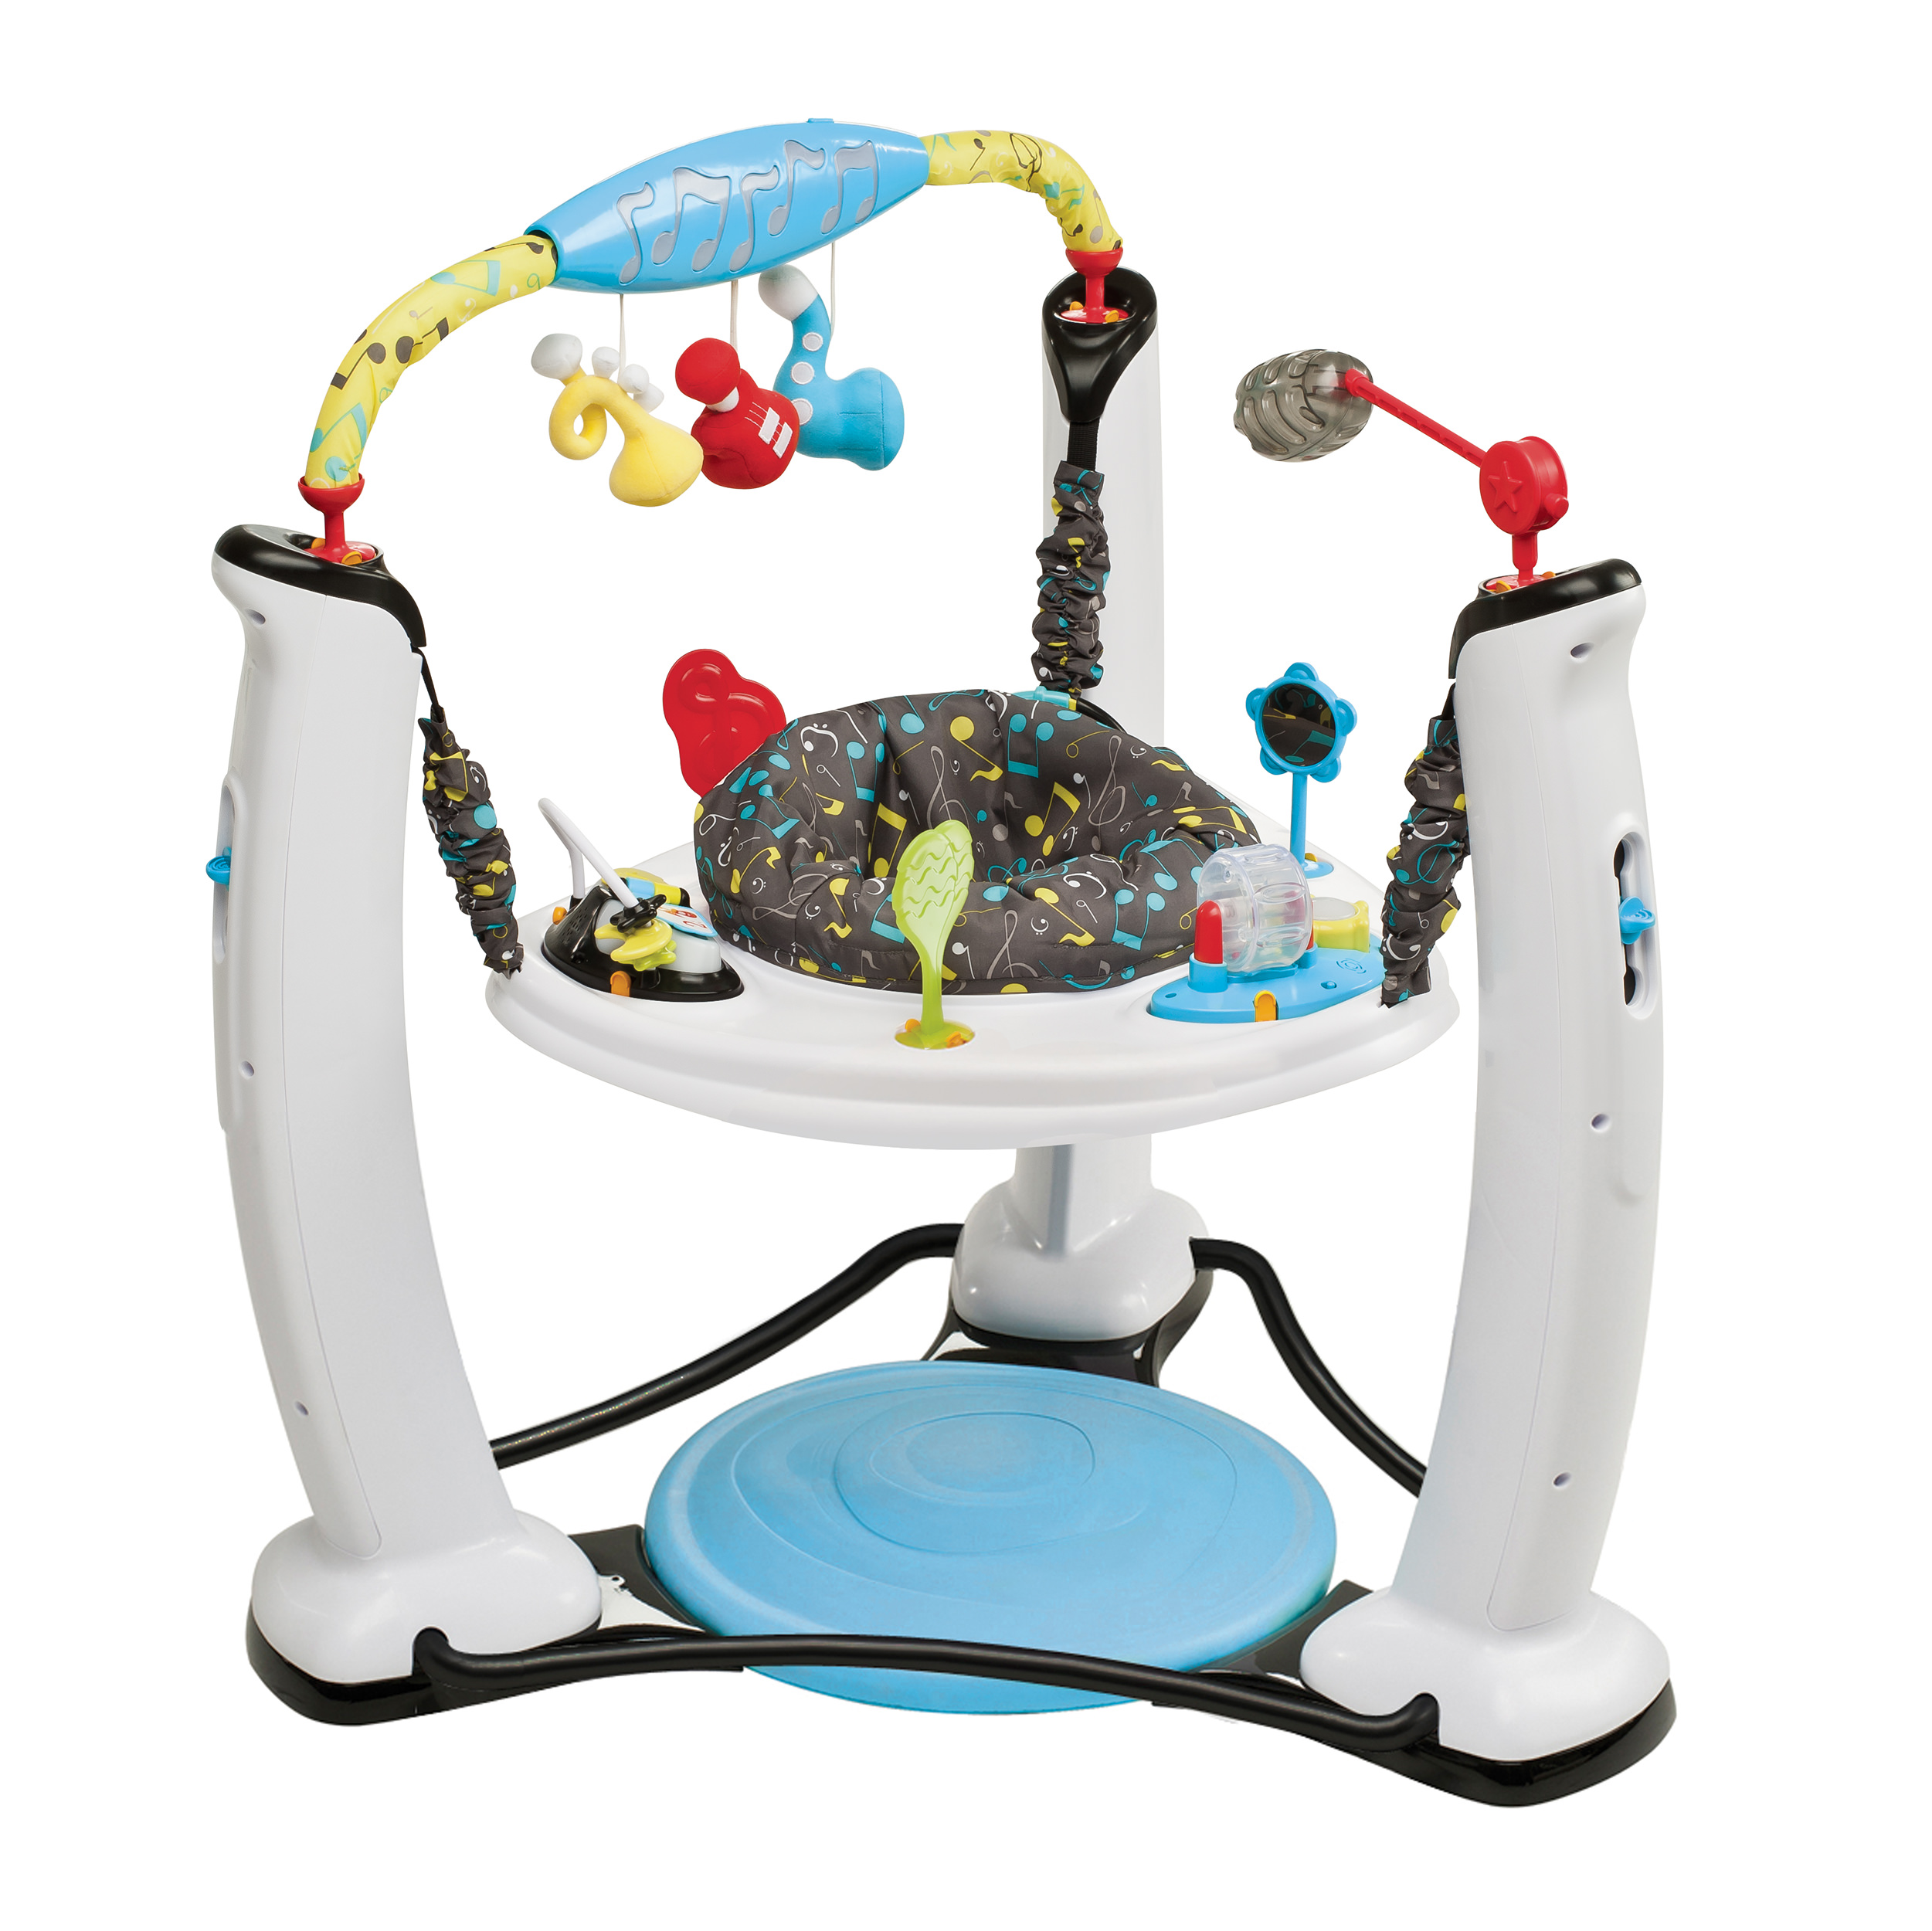 Evenflo Exersaucer Jump & Learn Stationary Jumper, Jam Session